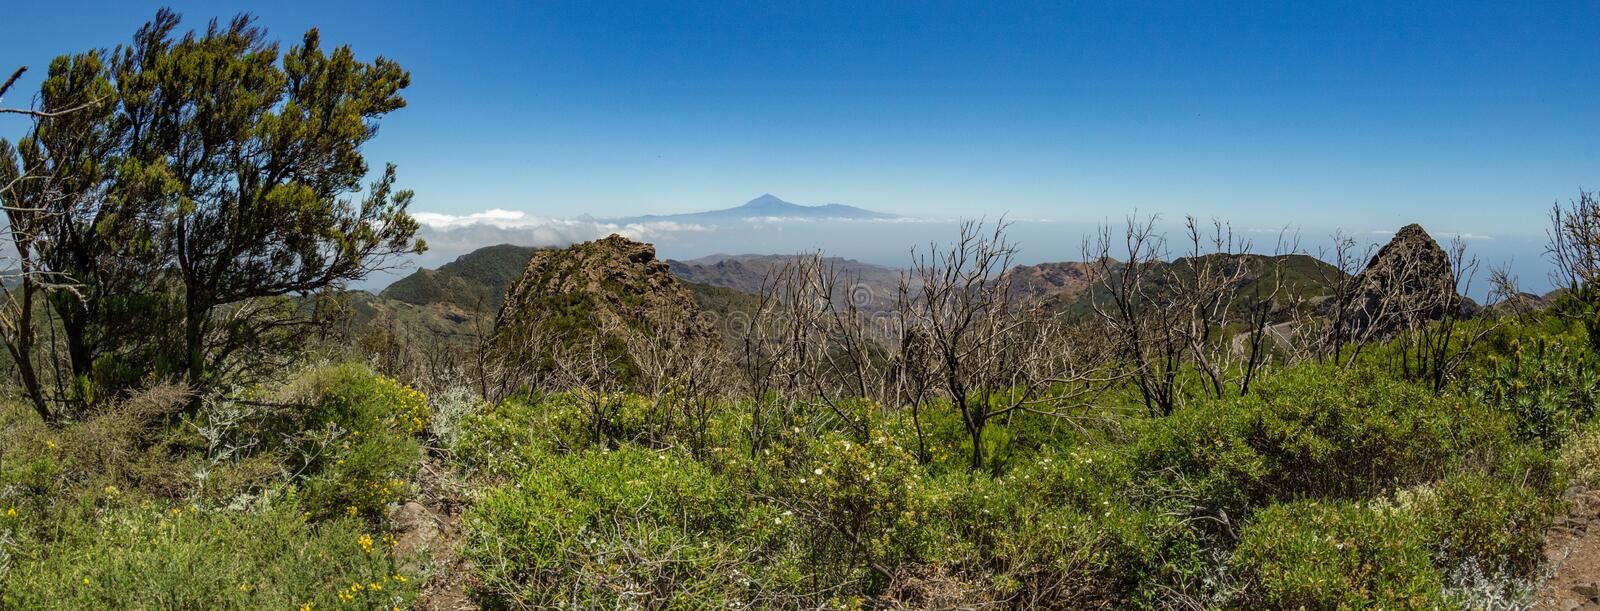 Panoramic view of Tenerife Island with volcano Teide above horizon and Los Roques peaks near Garajonay national park at La Gomera stock photos